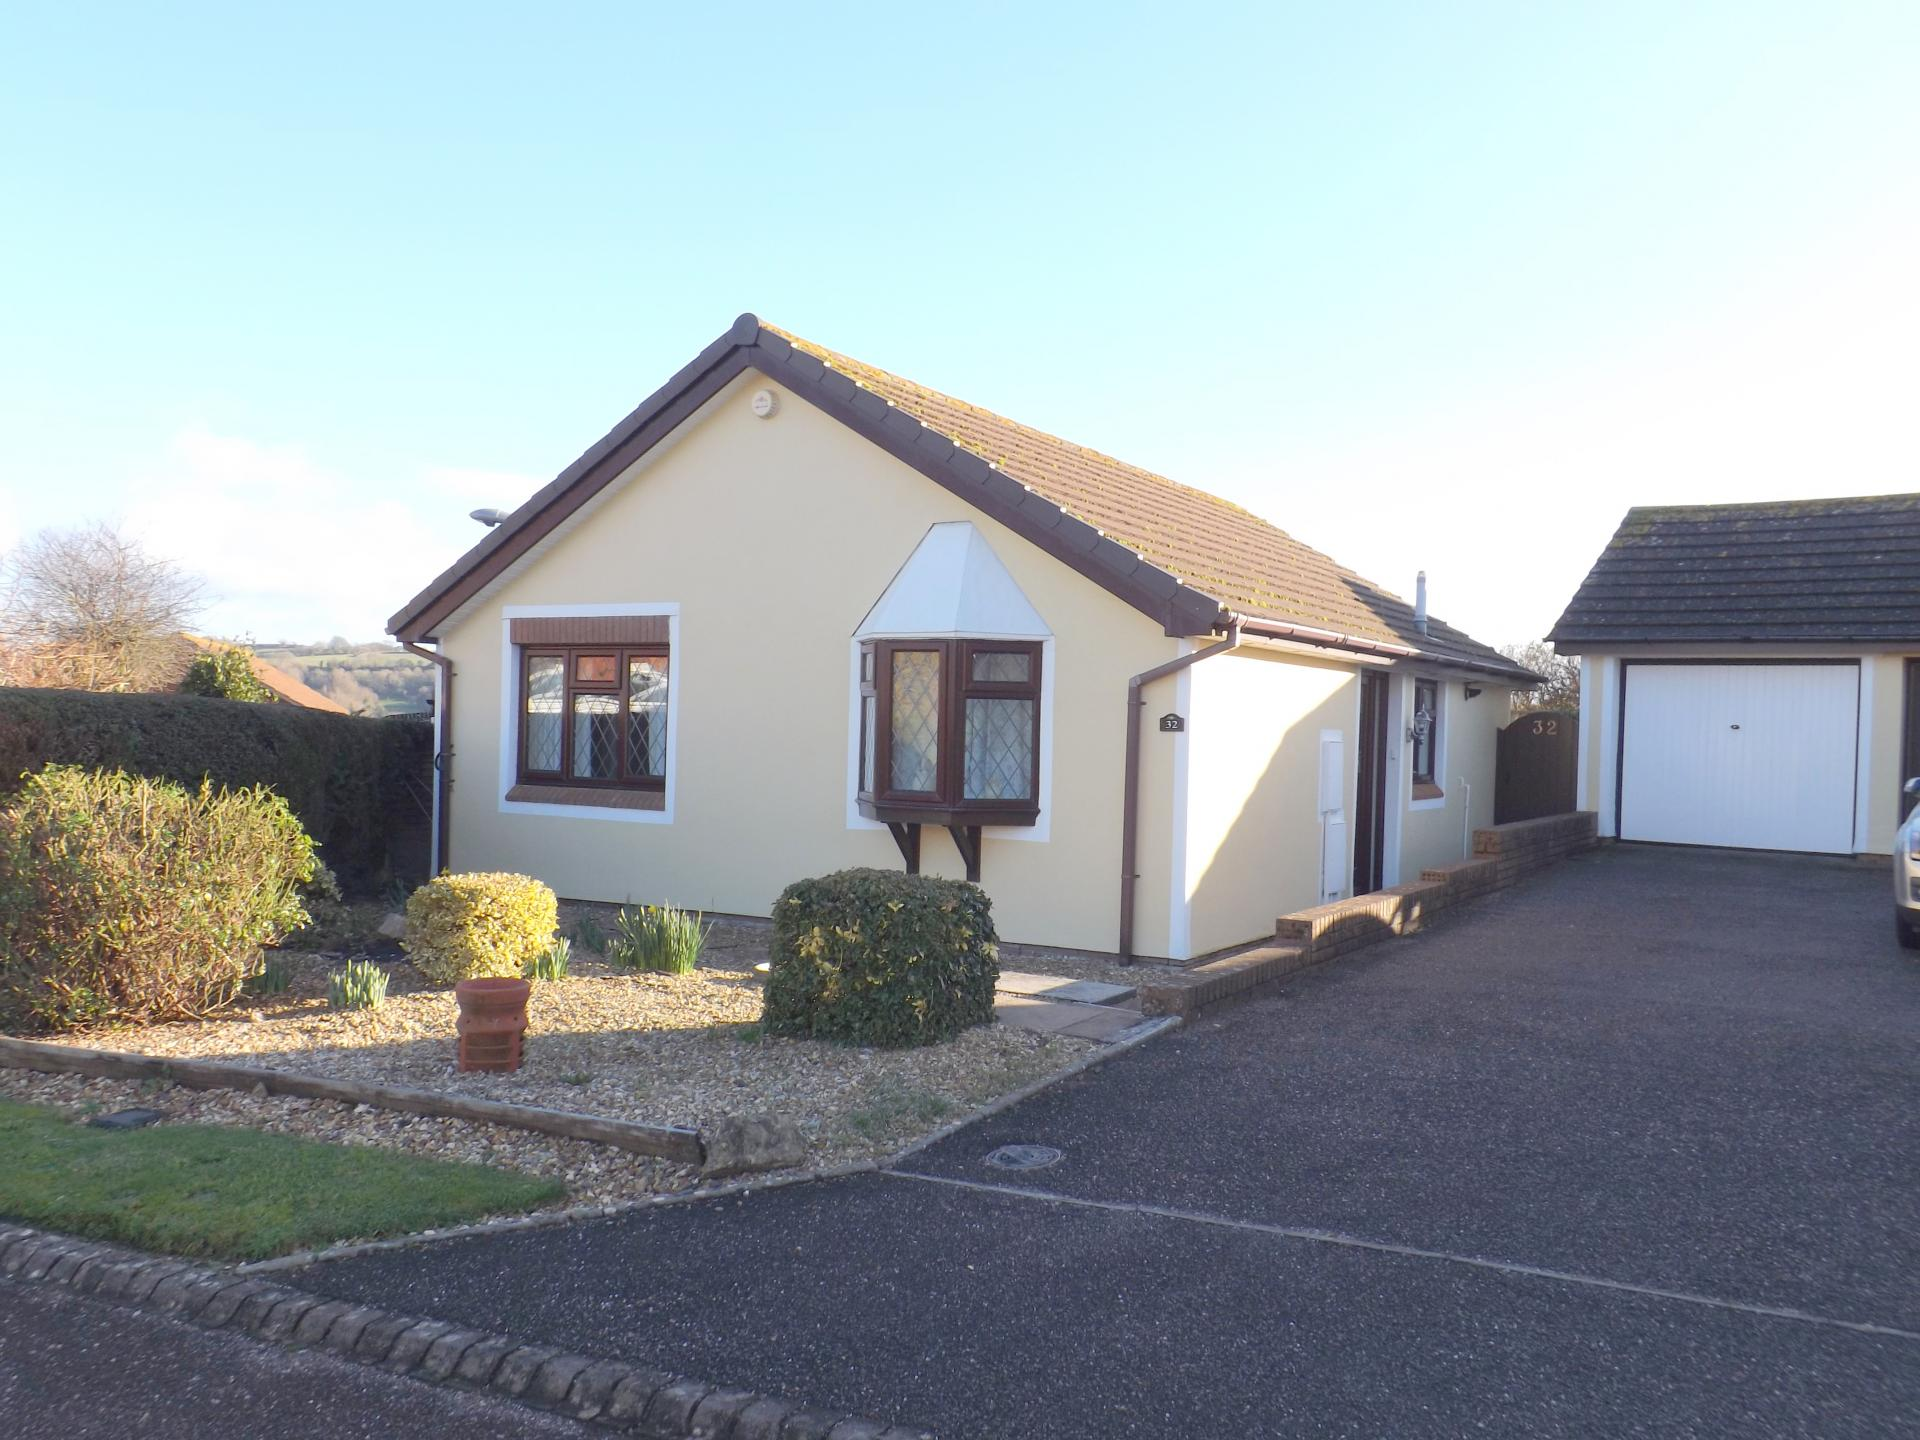 2 Bedrooms Bungalow for sale in Boundary Park, Seaton